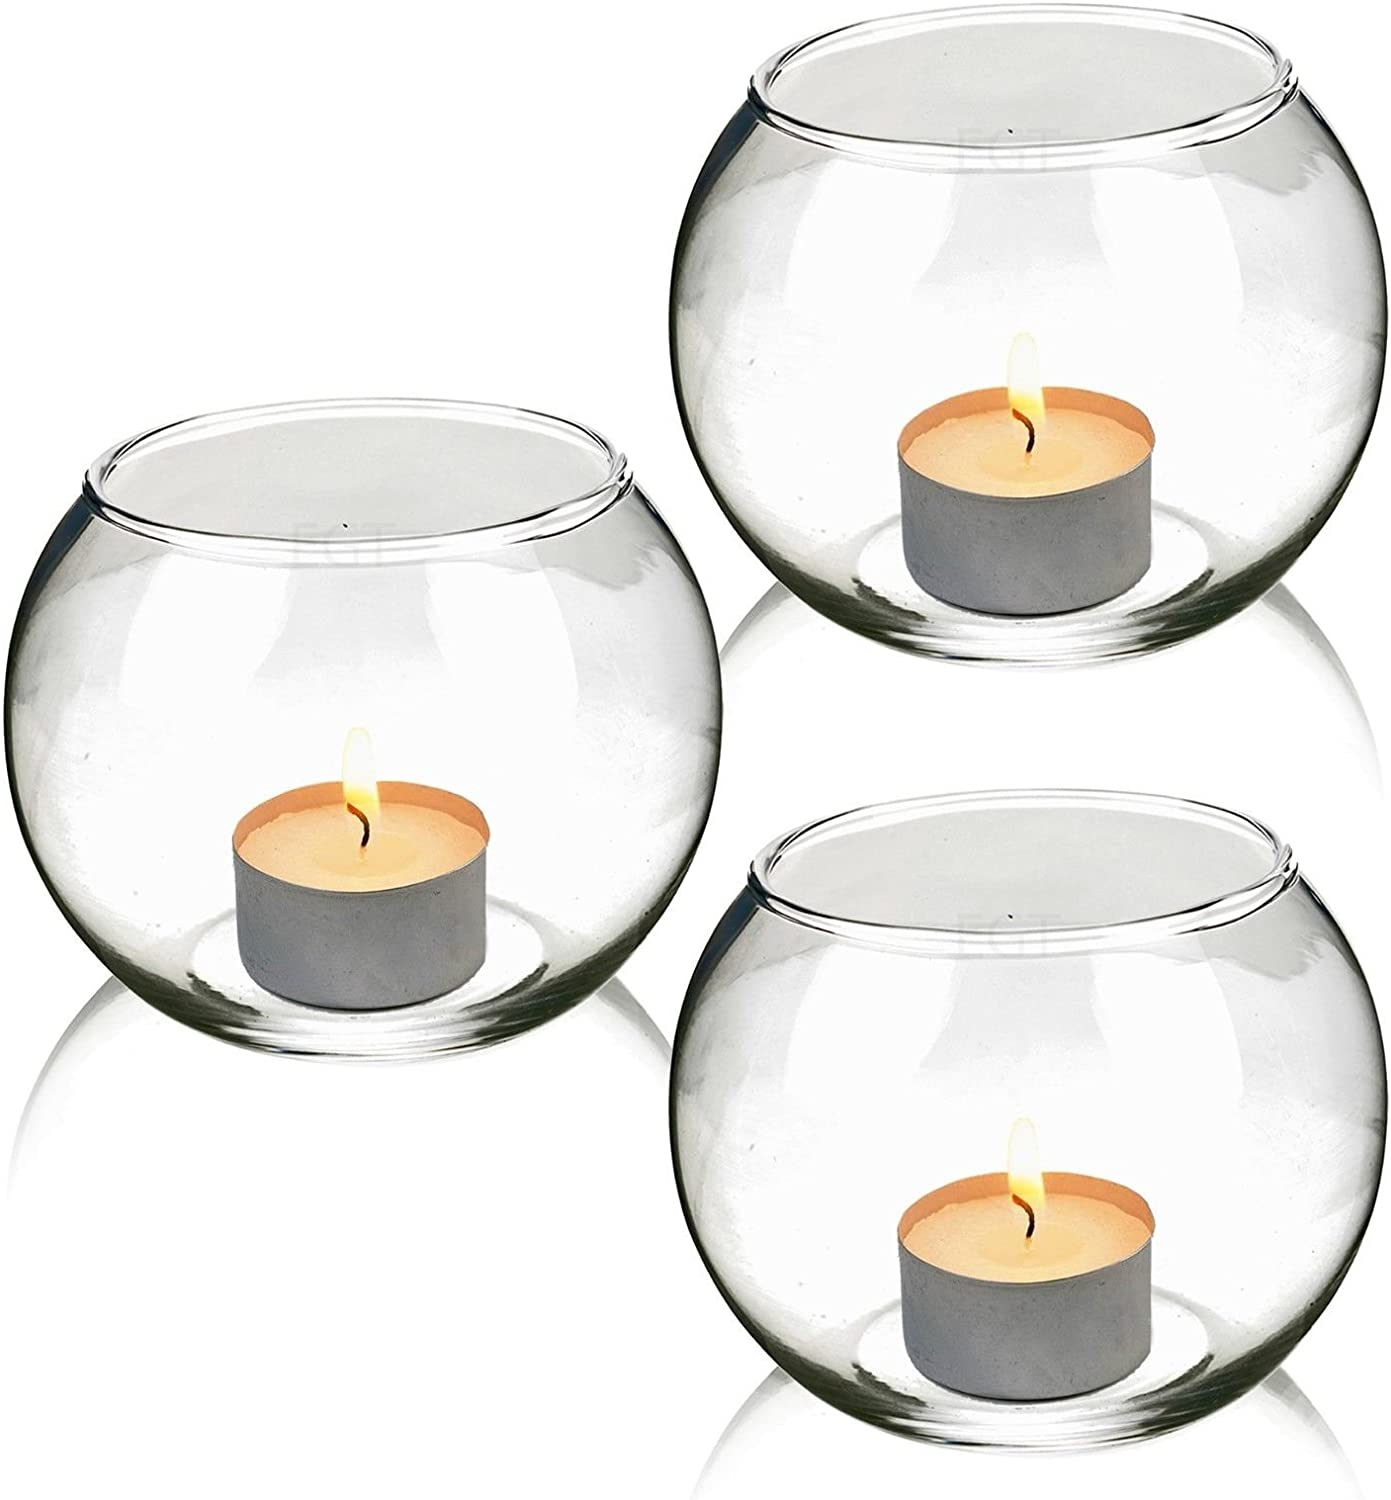 URBN LIVING /® Lot de 3/bougeoirs en Verre Ronde Small Set of 3 Round Glass Candle Holders Verre